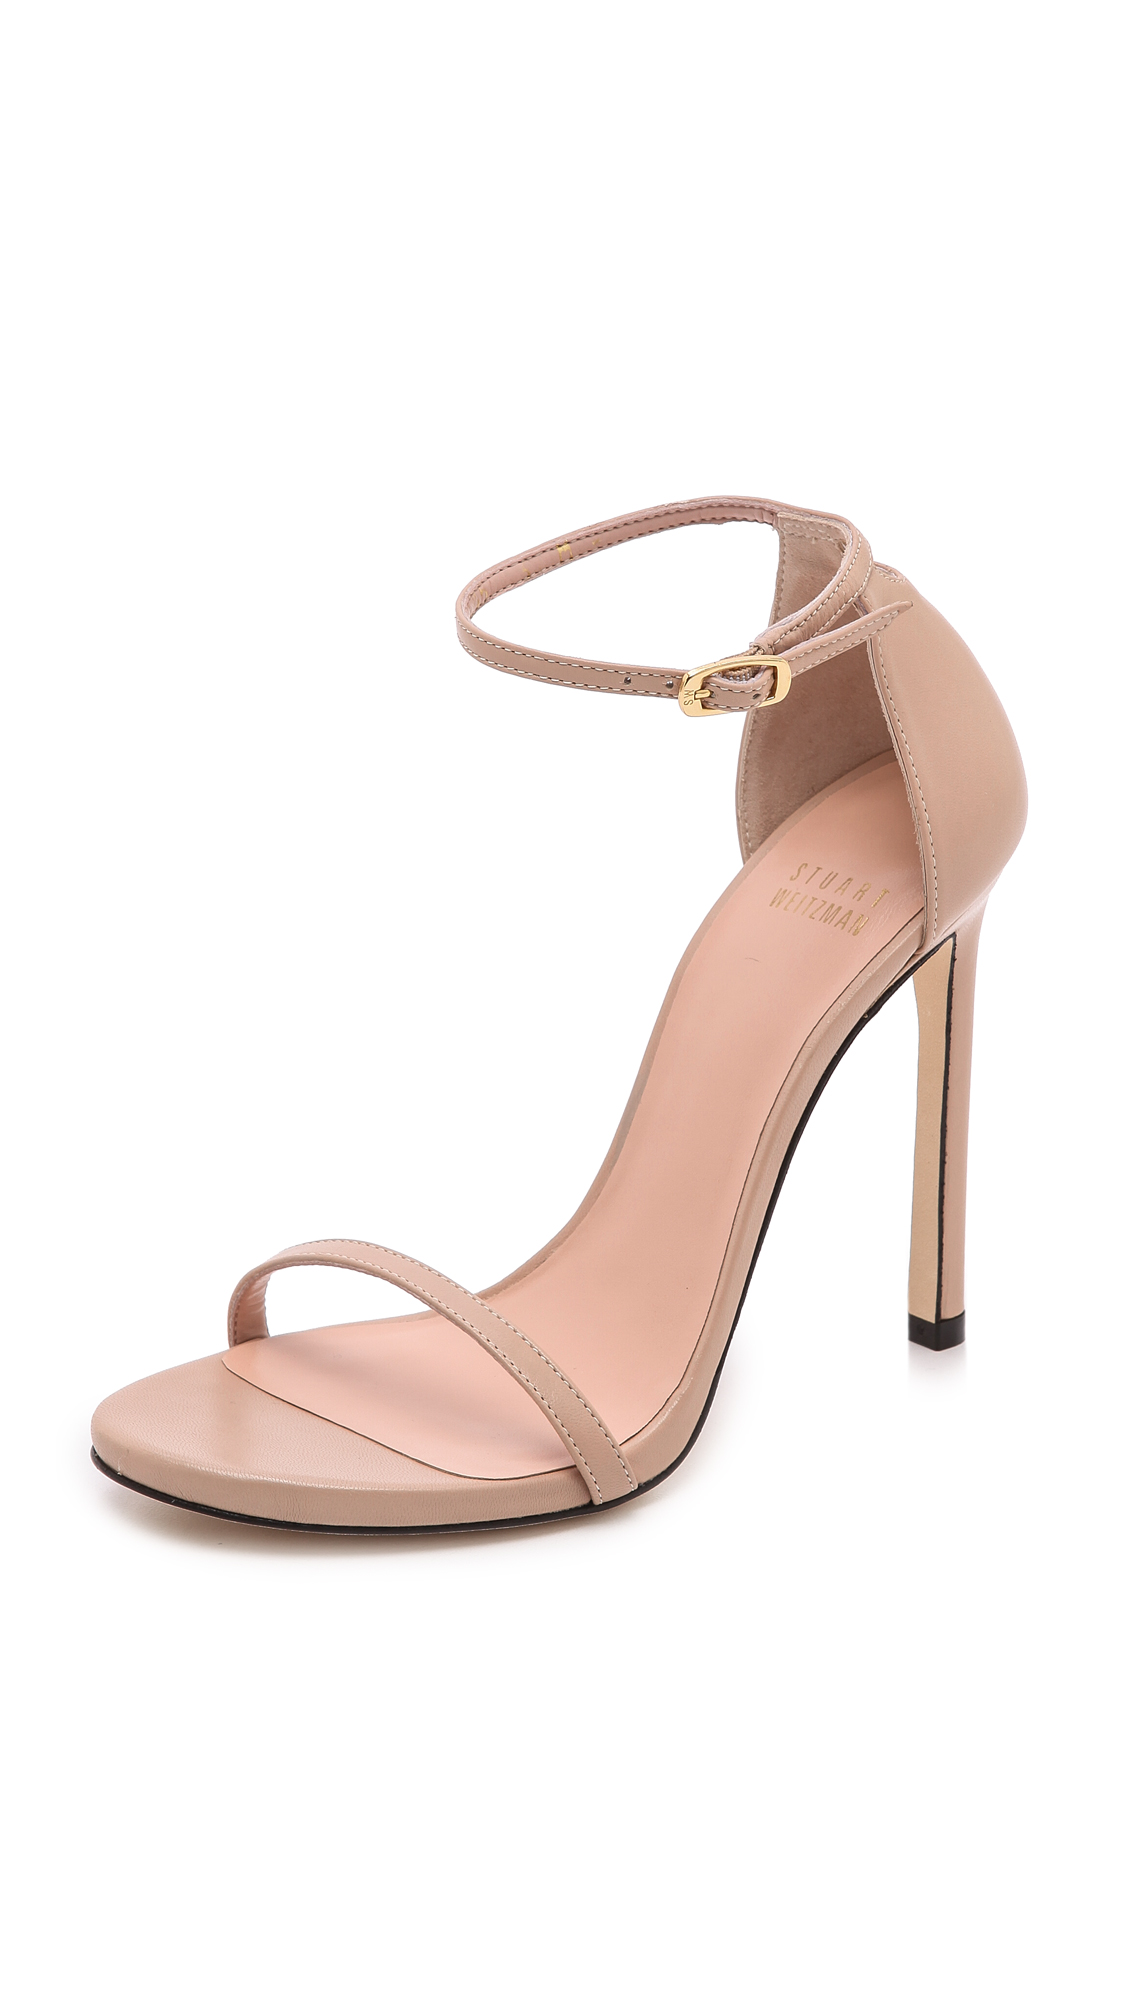 Stuart Weitzman 'nudist Song' Ankle Strap Patent Leather Sandals In Adobe